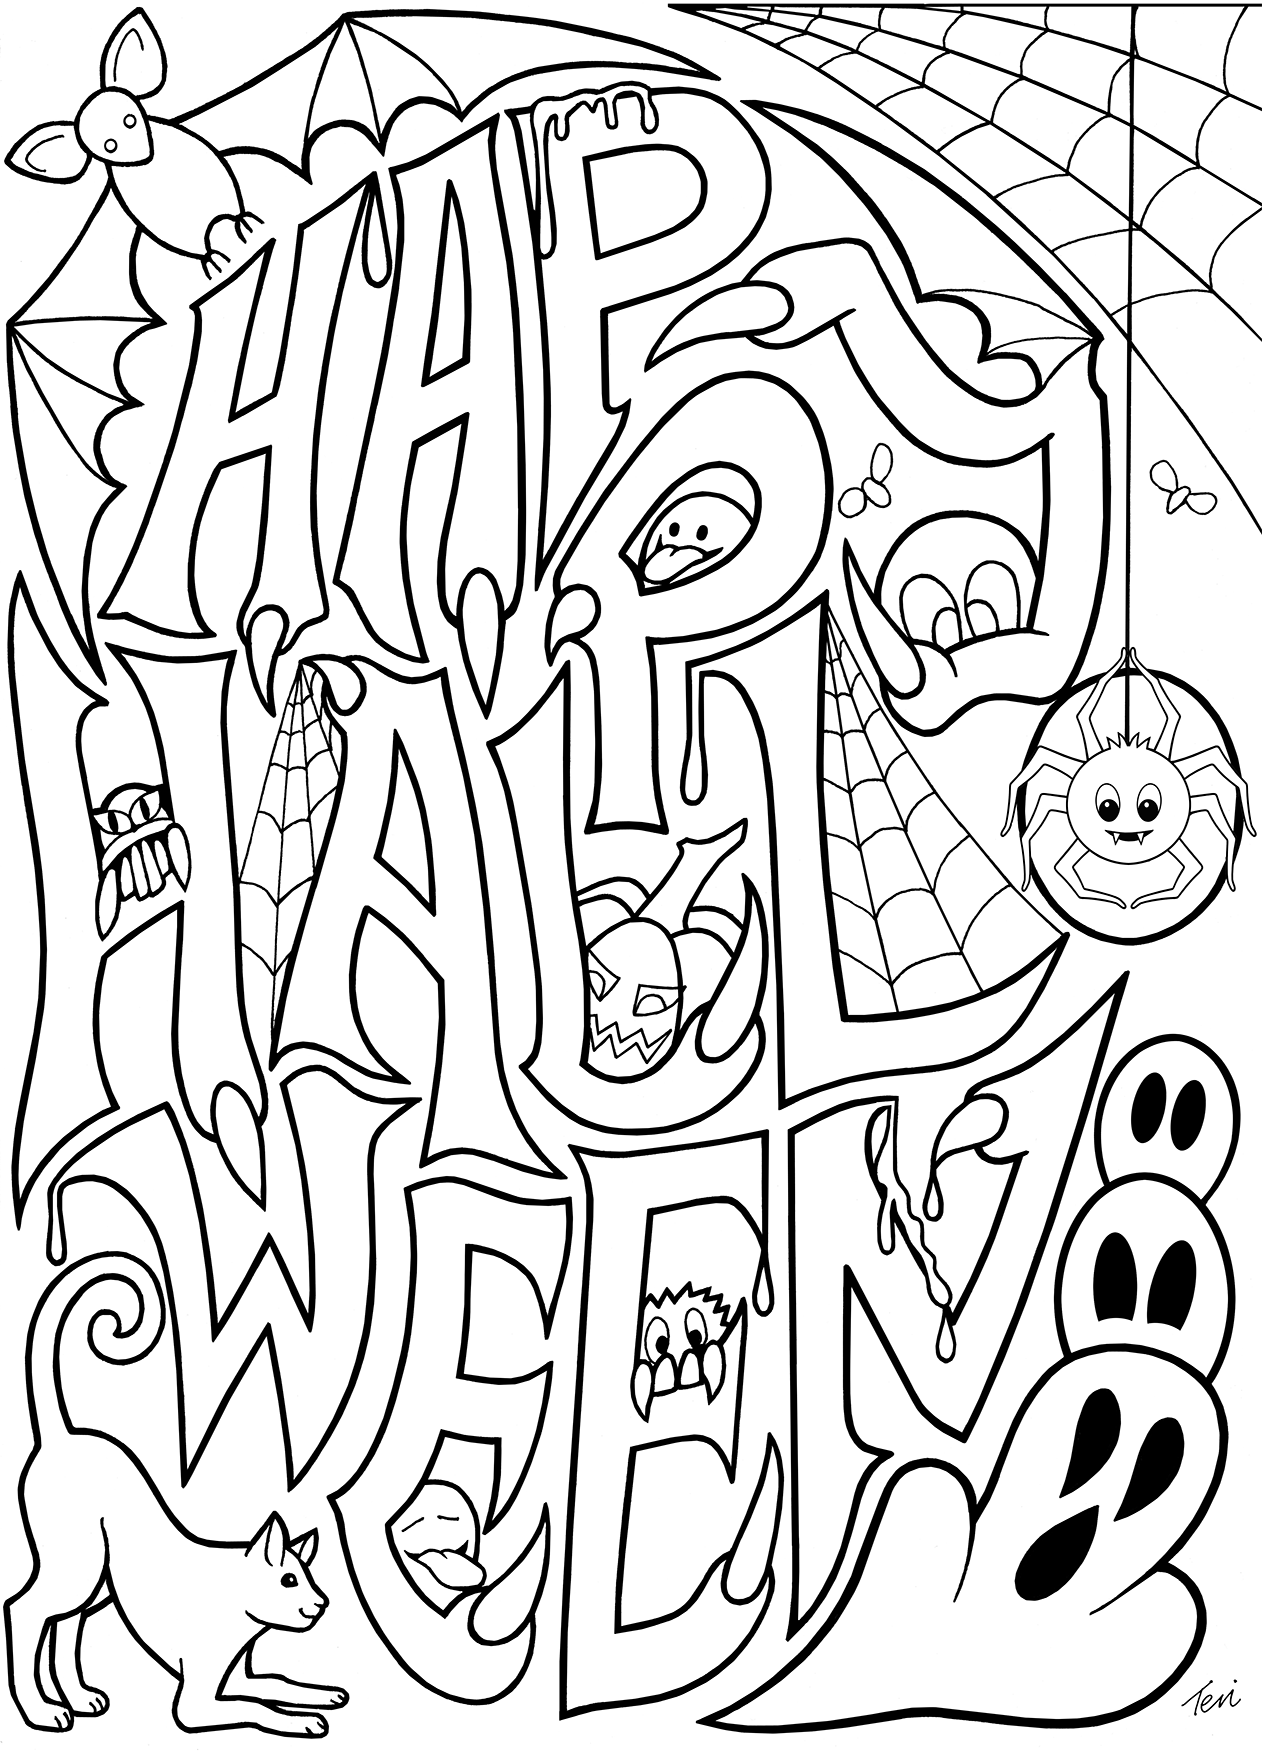 coloring sheets for older students difficult coloring pages for older children coloring home for coloring sheets students older